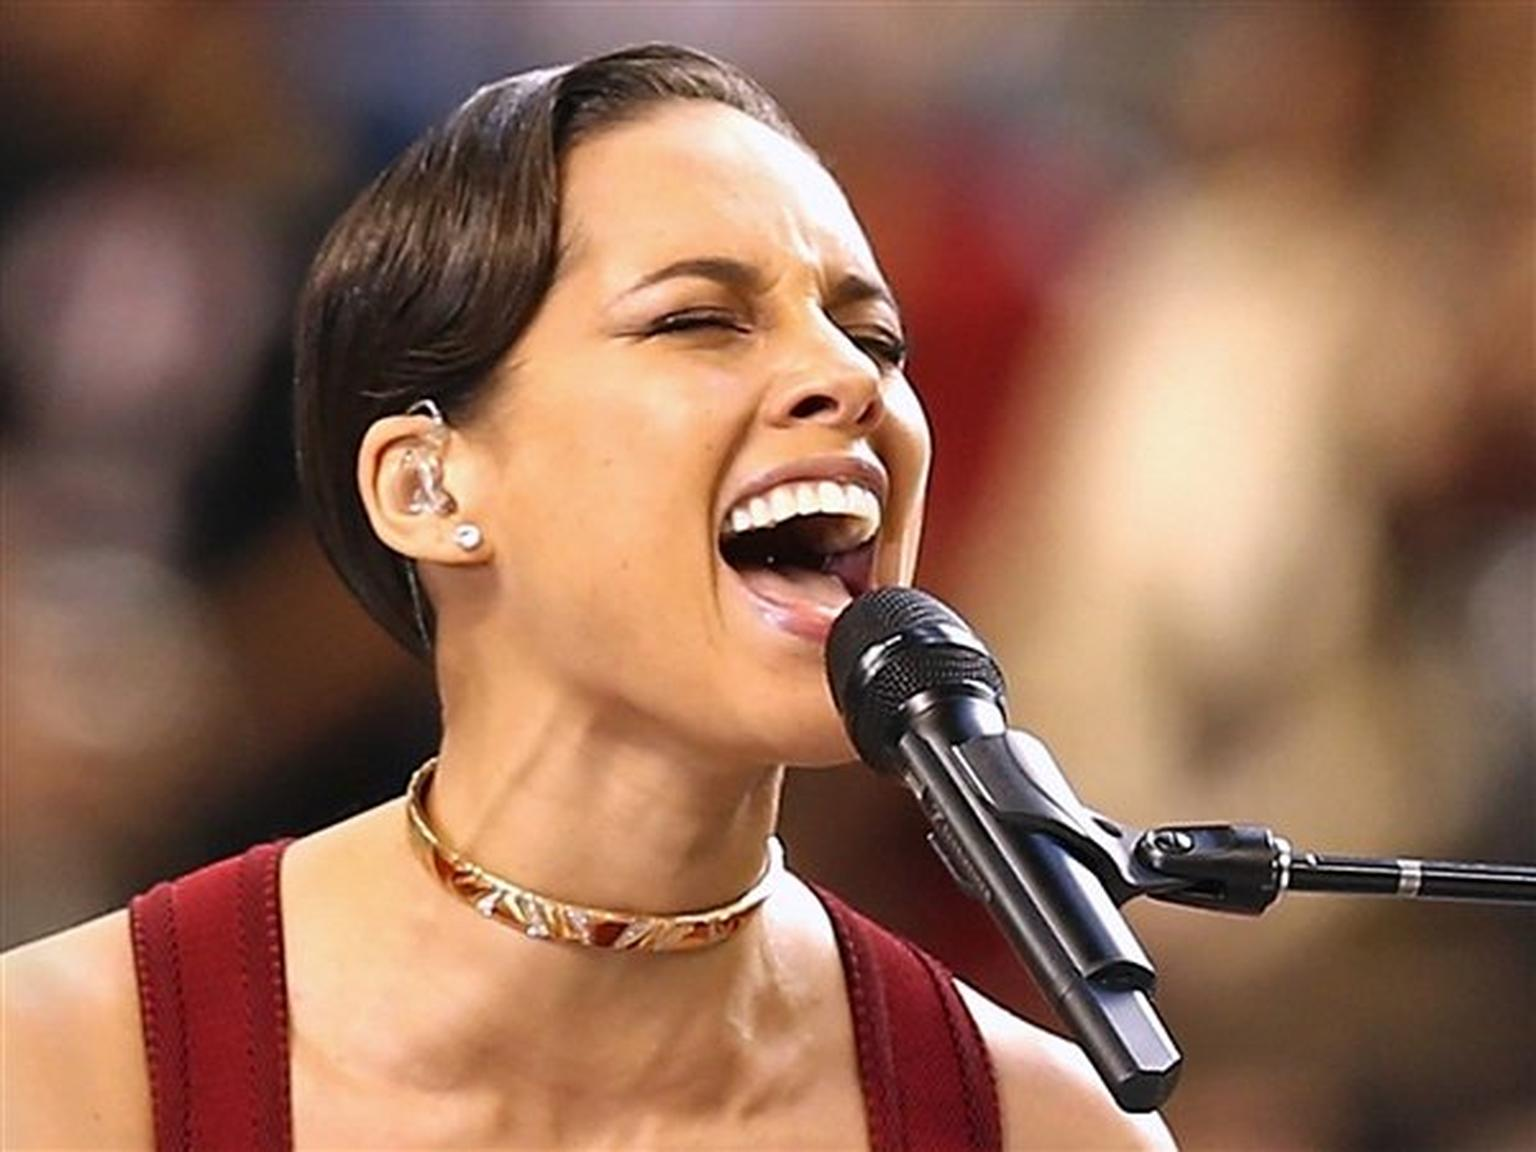 The Marina B diamond necklace worn by Alicia Keys when she performed during last year's Super Bowl is part of the Legendary Luxury Jewellery Collection designed by Marina Bulgari for her eponymous luxury label Marina B, which will go on sale at Bonhams Ho